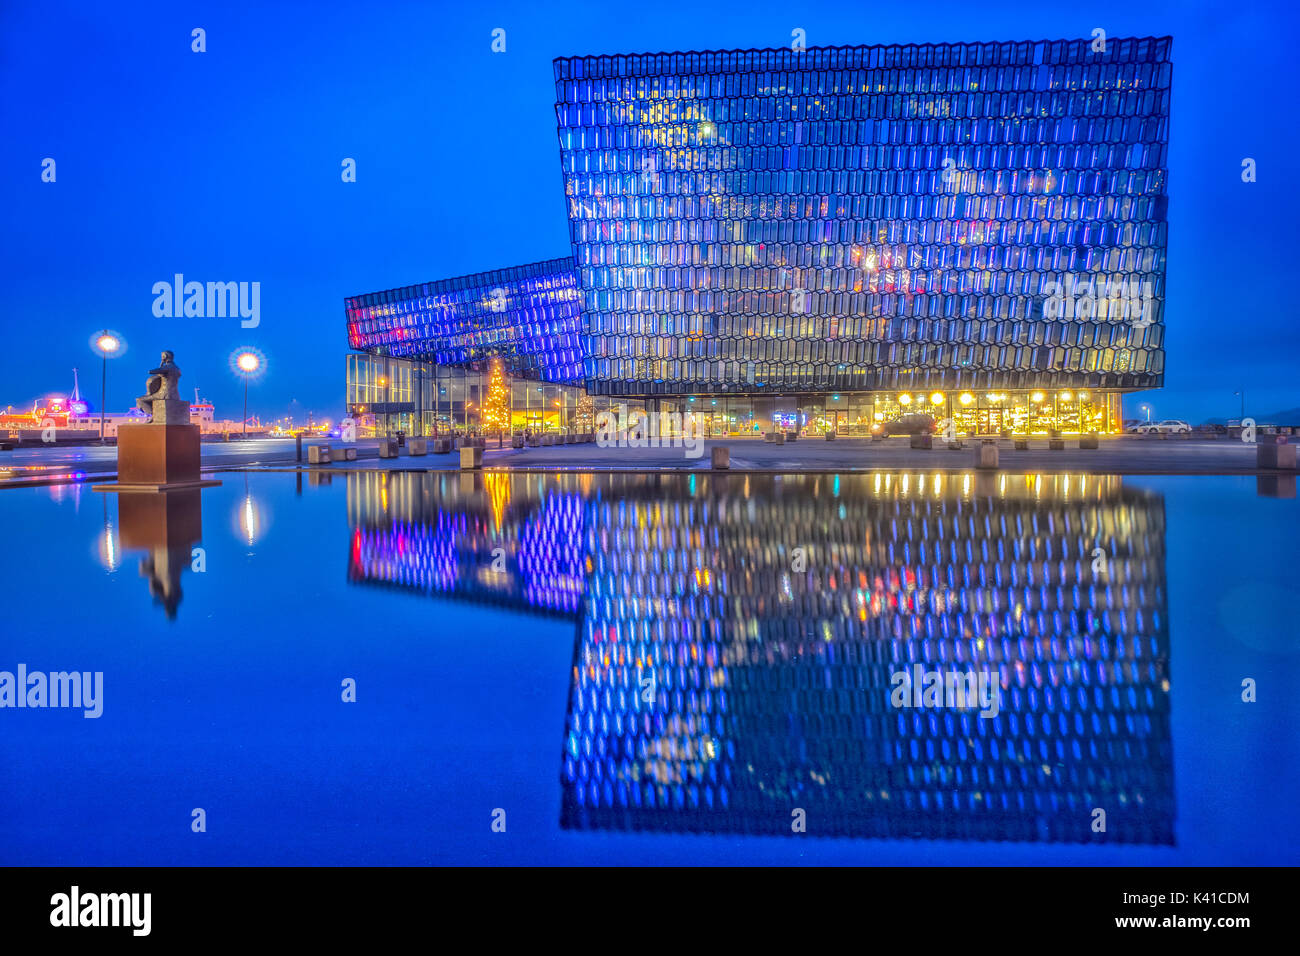 Harpa reykjavik concert hall and conference centre at night - Stock Image